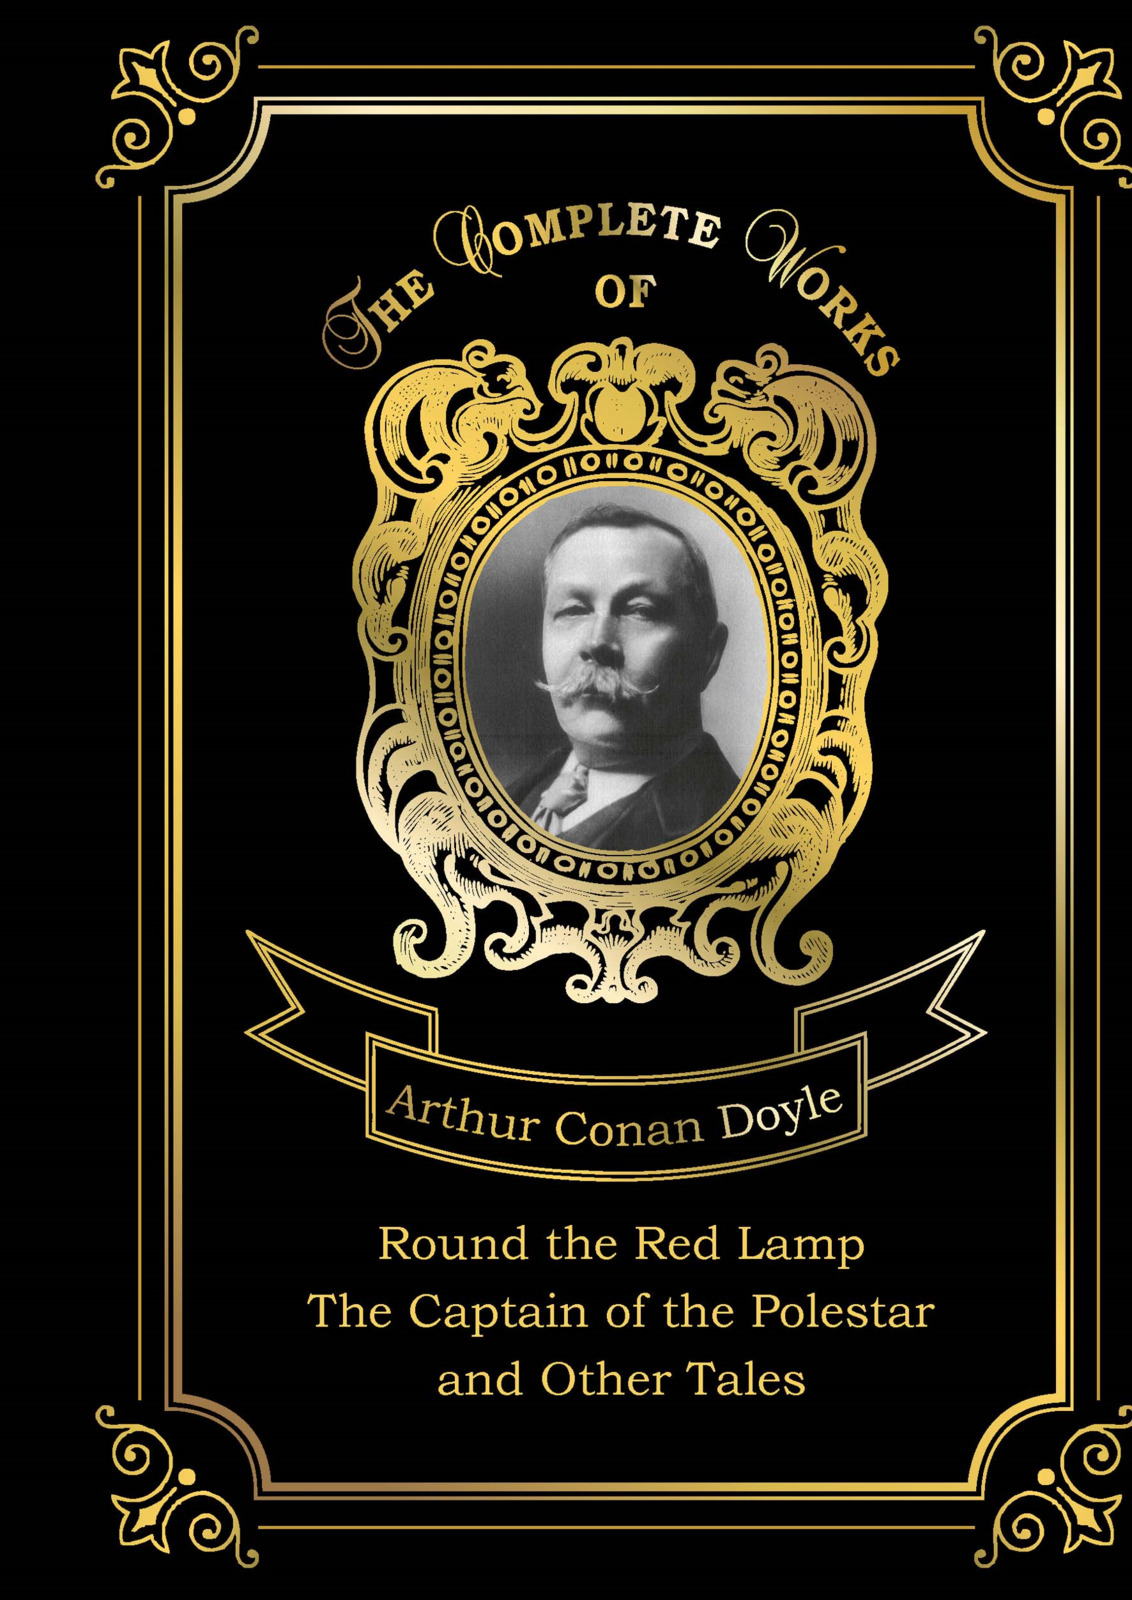 Arthur Conan Doyle Round the Red Lamp: The Captain of the Polestar and Other Tales ethan frome and other short fiction